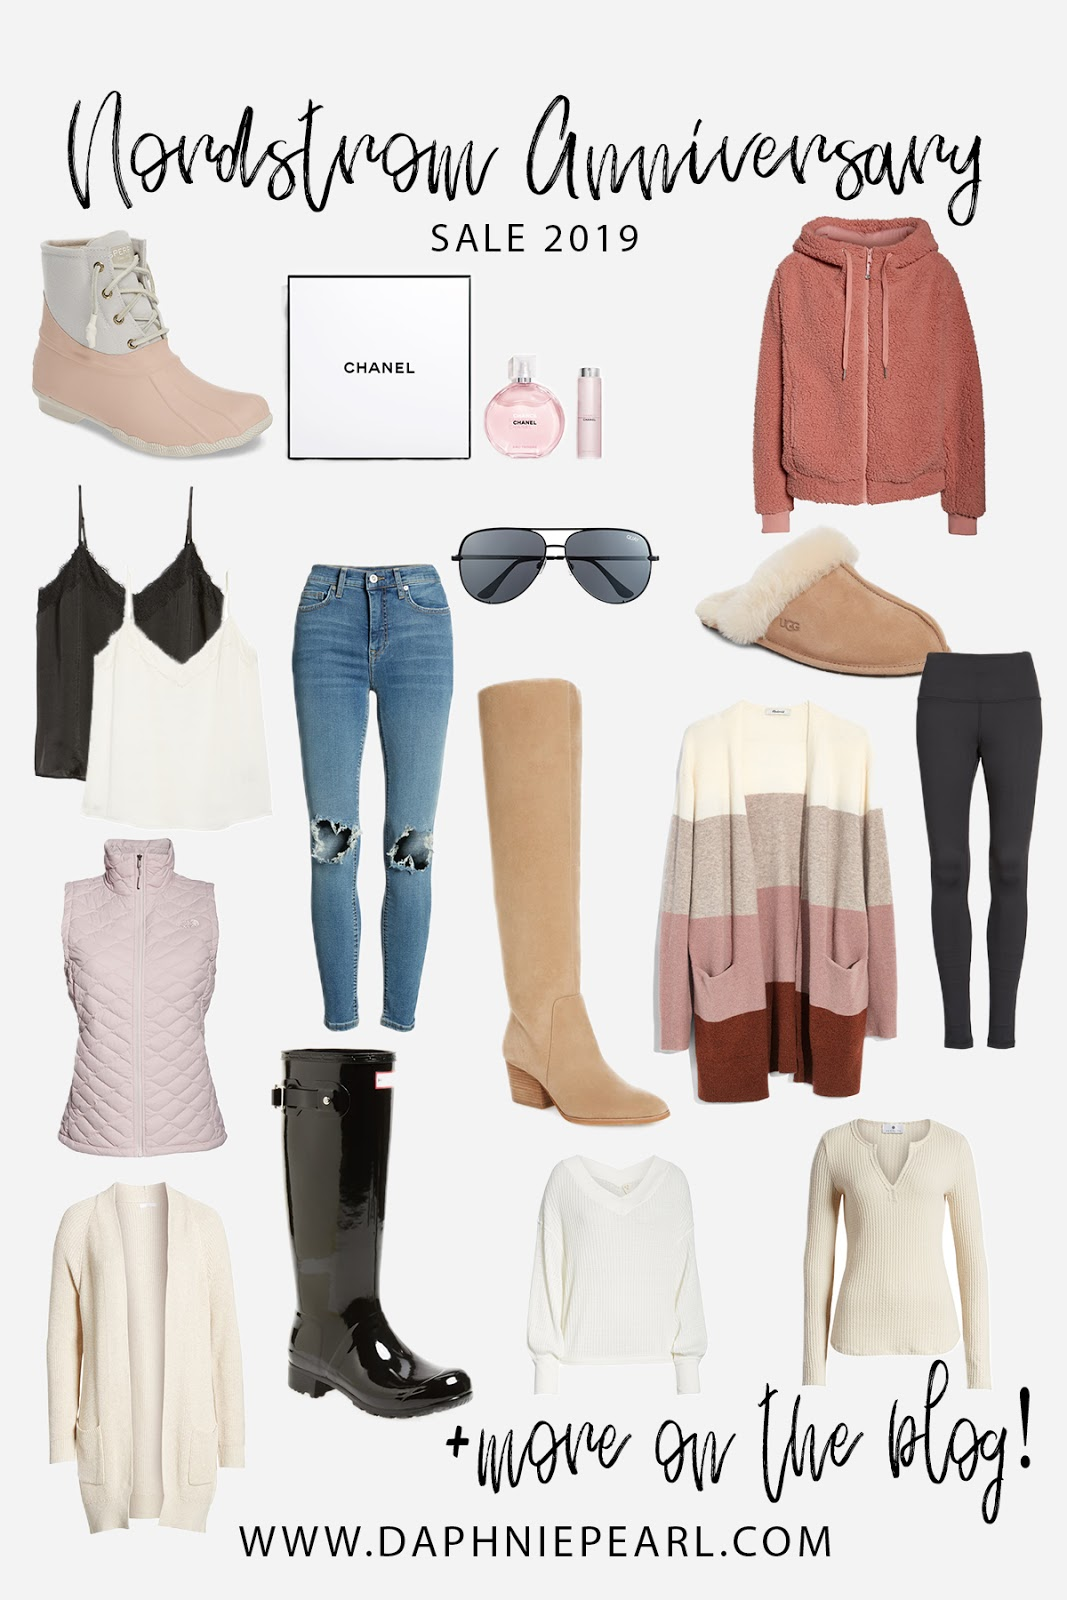 My Favorites and Finds from the Nordstrom Anniversary Sale 2019 Daphnie's picks and back to school finds from the Nordstrom Anniversary Sale Early Access little girl style tween style inspiration inspo outfit idea outfit ideas shirt shoes shorts denim jeans pants sneakers booties sandals slides ugg boots tshirt tee top sale promotion